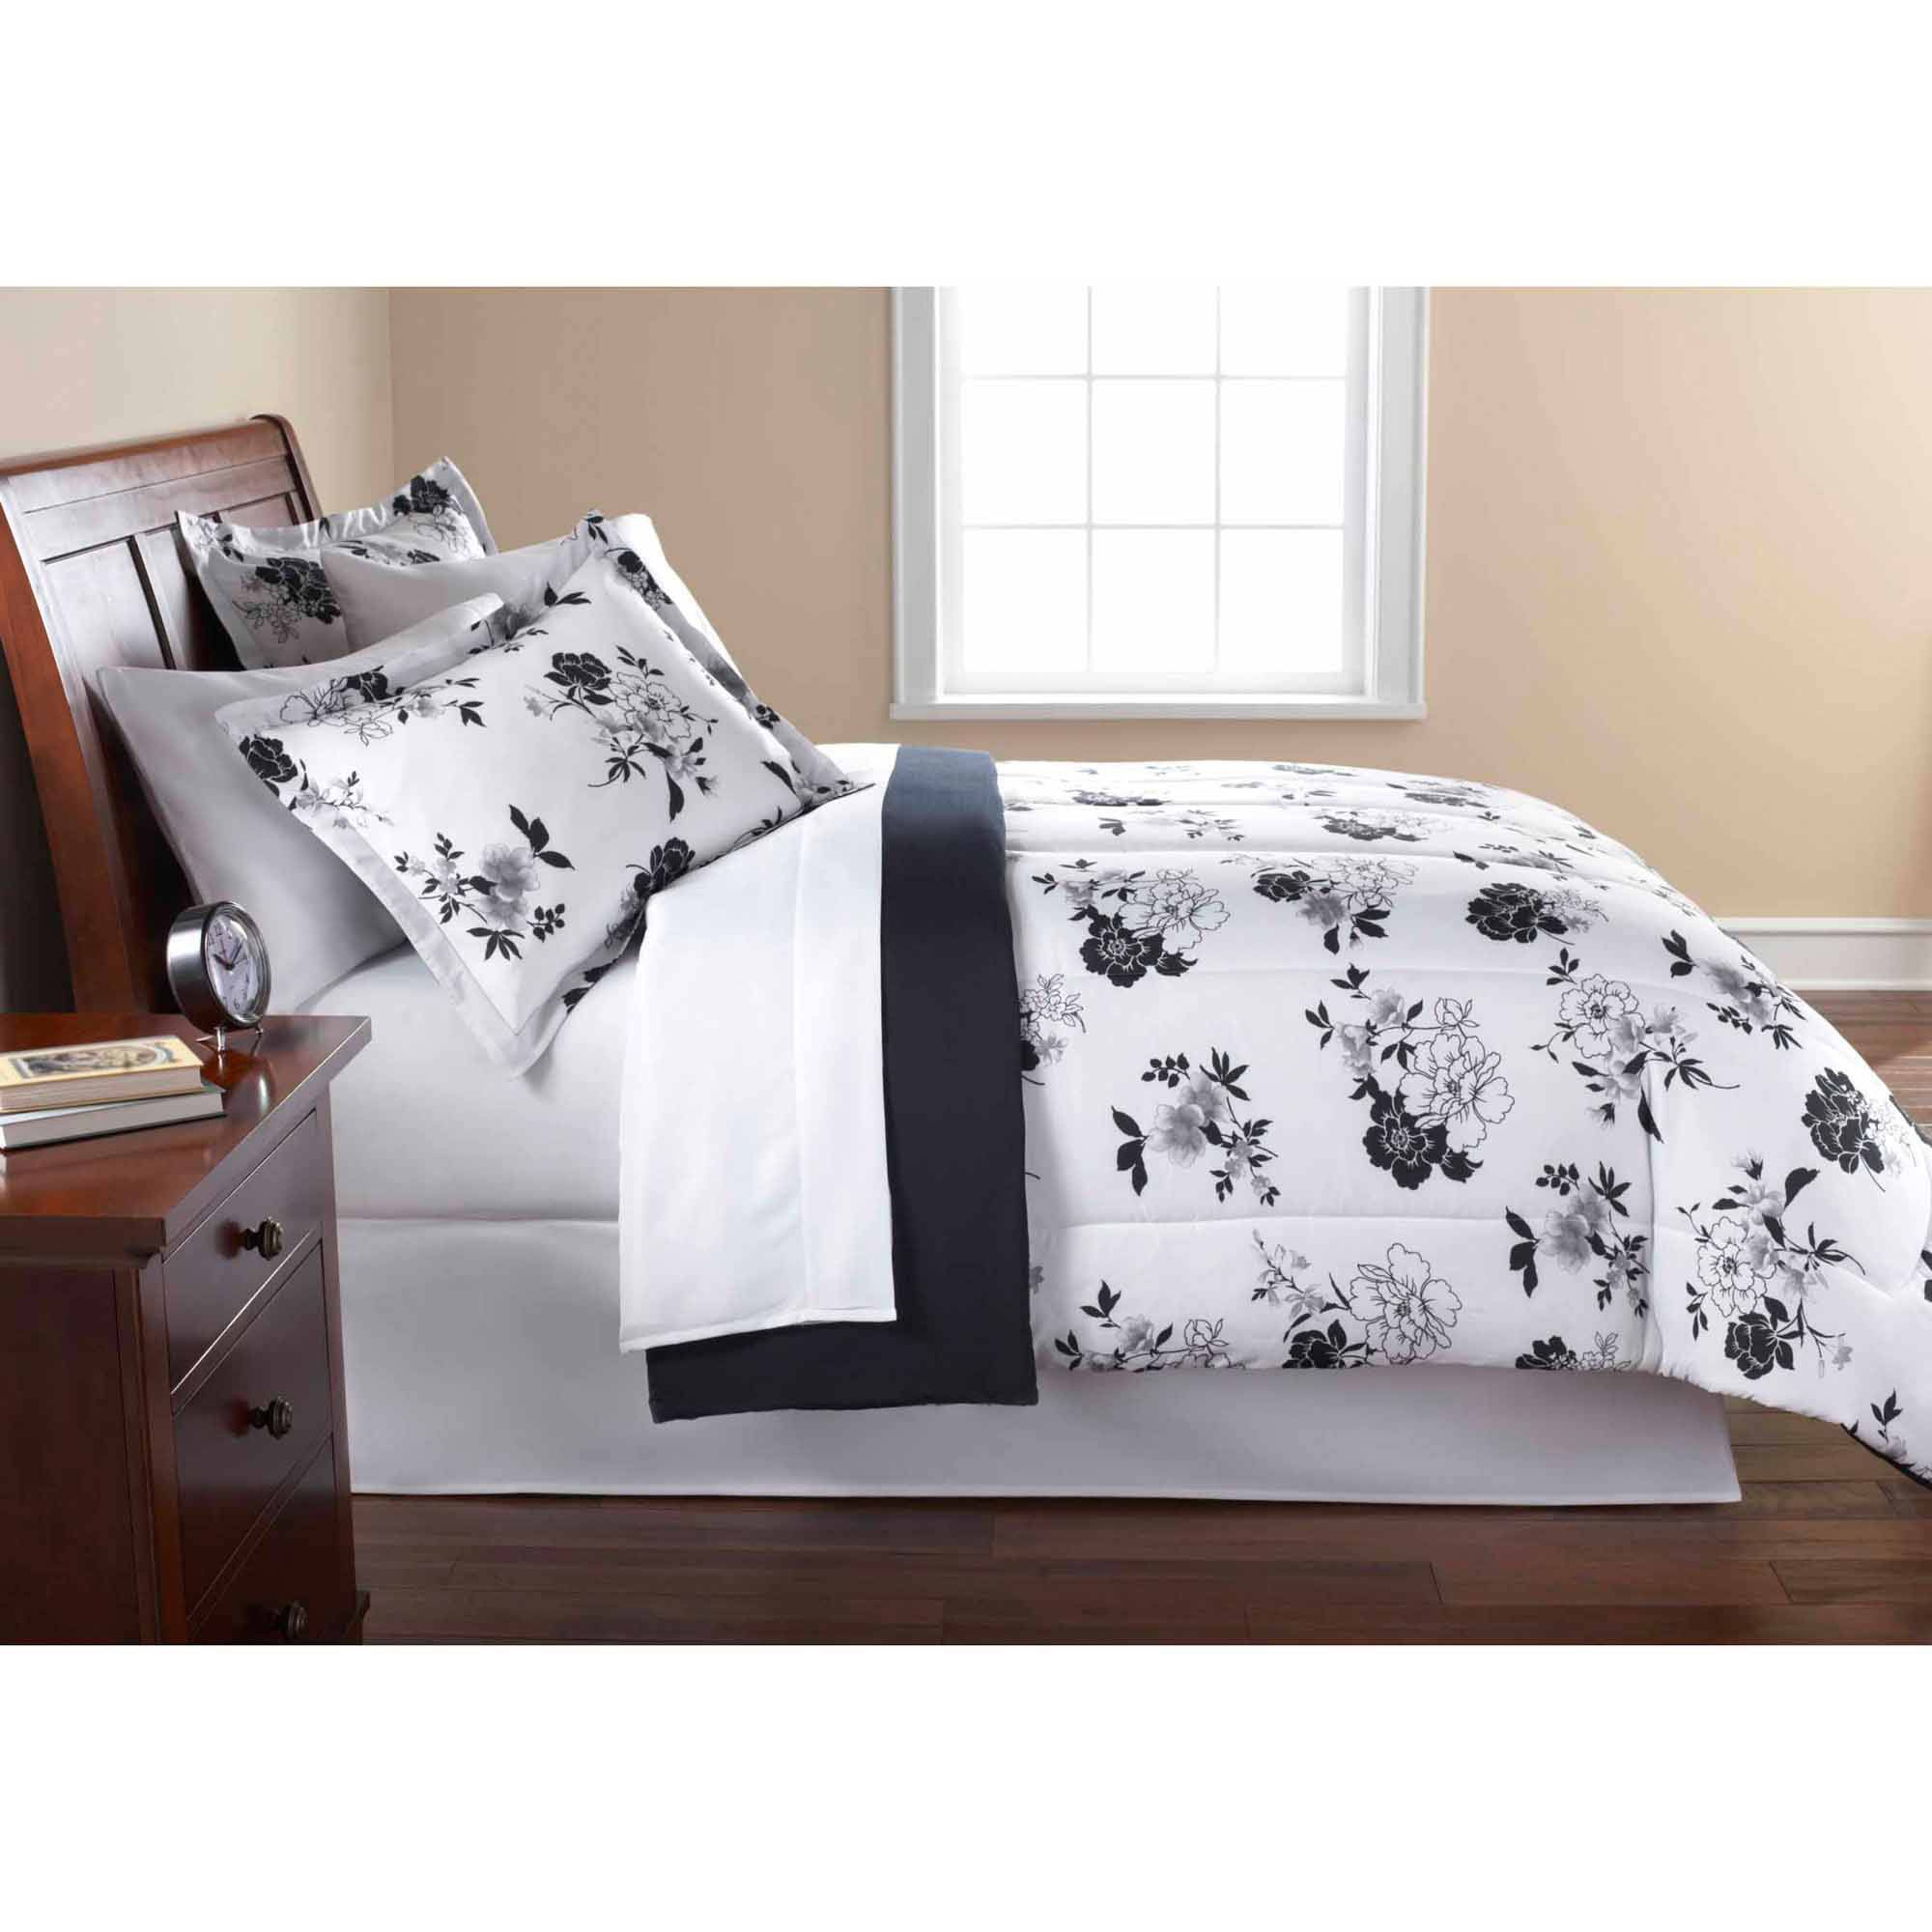 Mainstays Black and White Floral Bed in a Bag Bedding forter Set